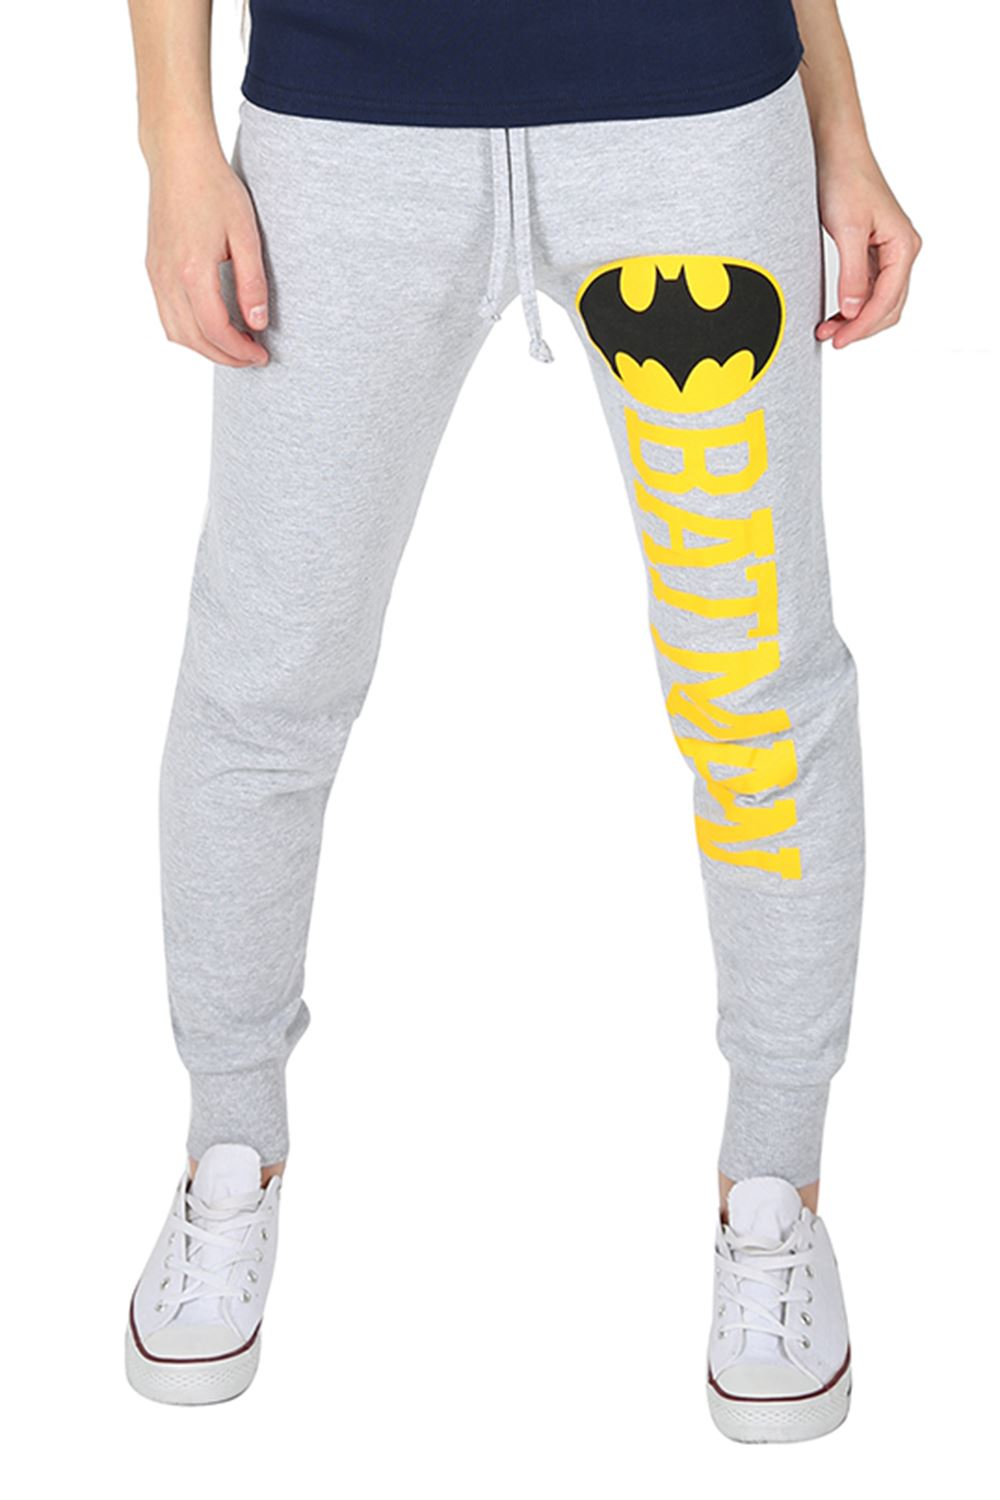 Womens Ladies Superman Batman Logo Jog Bottoms Jogging Pants Trouser Plus Size